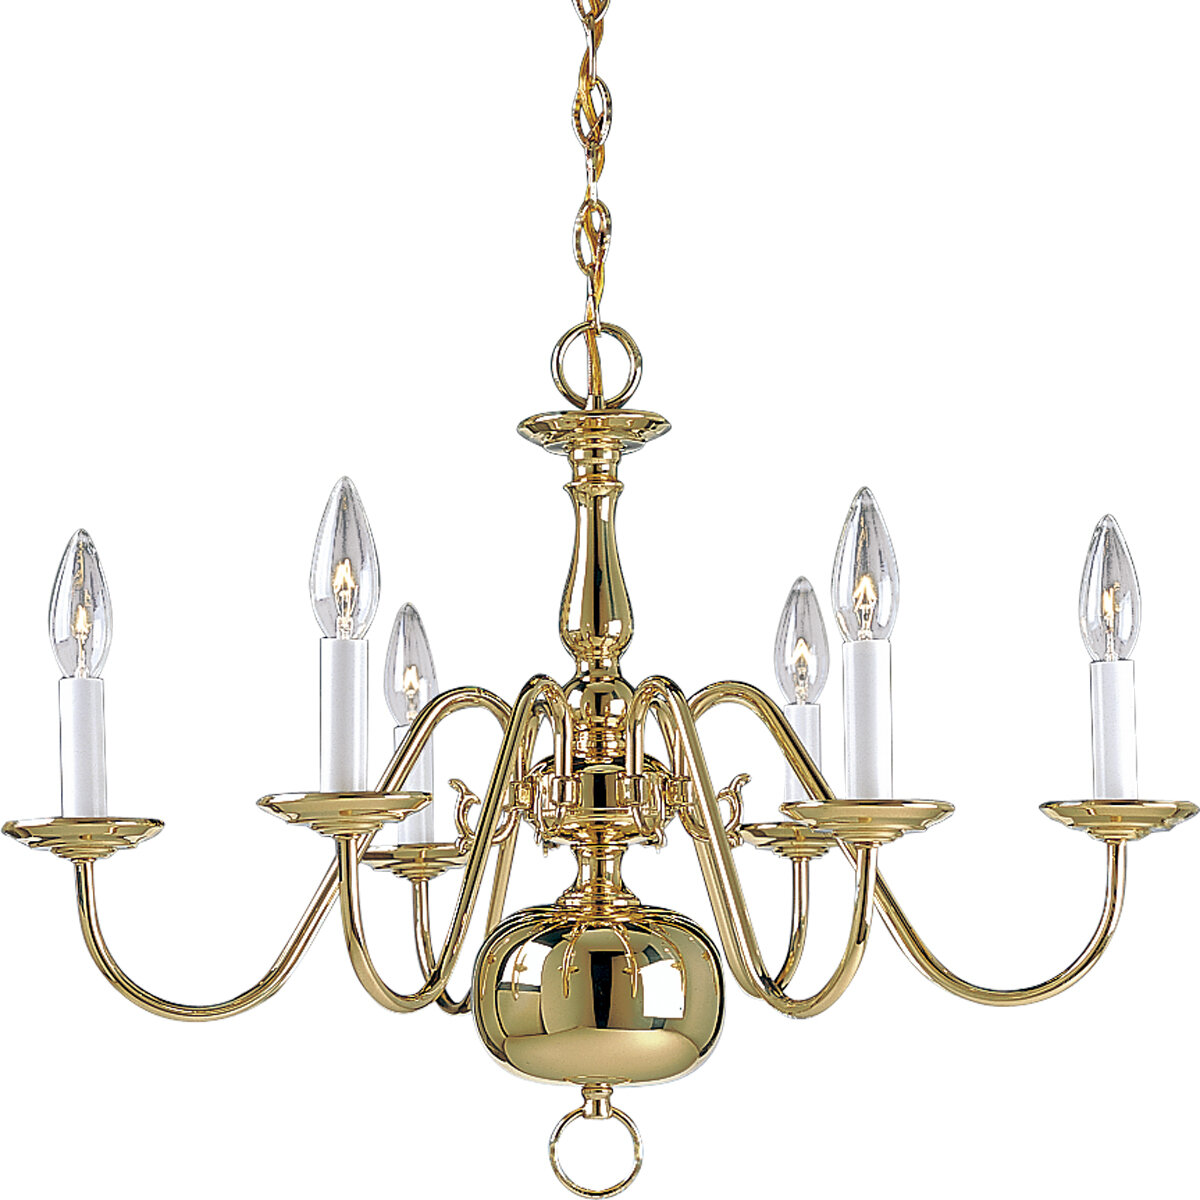 Alcott Hill Doyle 6 Light Candle Style Classic Traditional Chandelier Reviews Wayfair